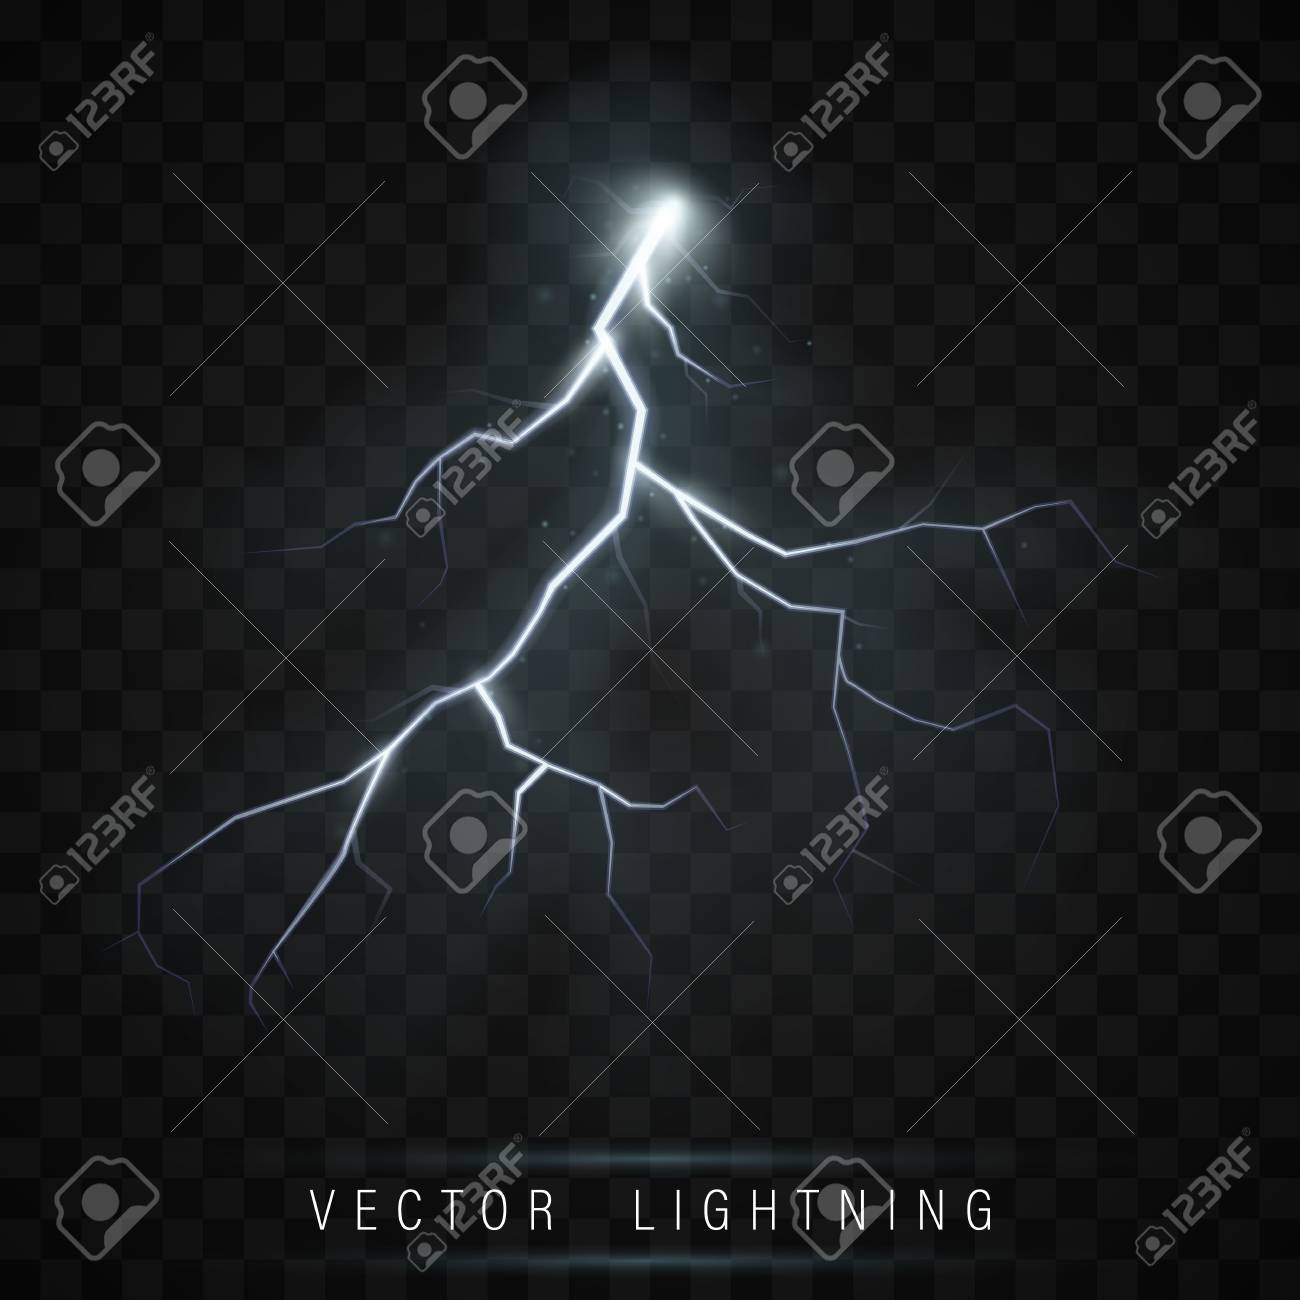 Lightning Flash Bolt Lightning Magic And Bright Light Effects Royalty Free Cliparts Vectors And Stock Illustration Image 110858611